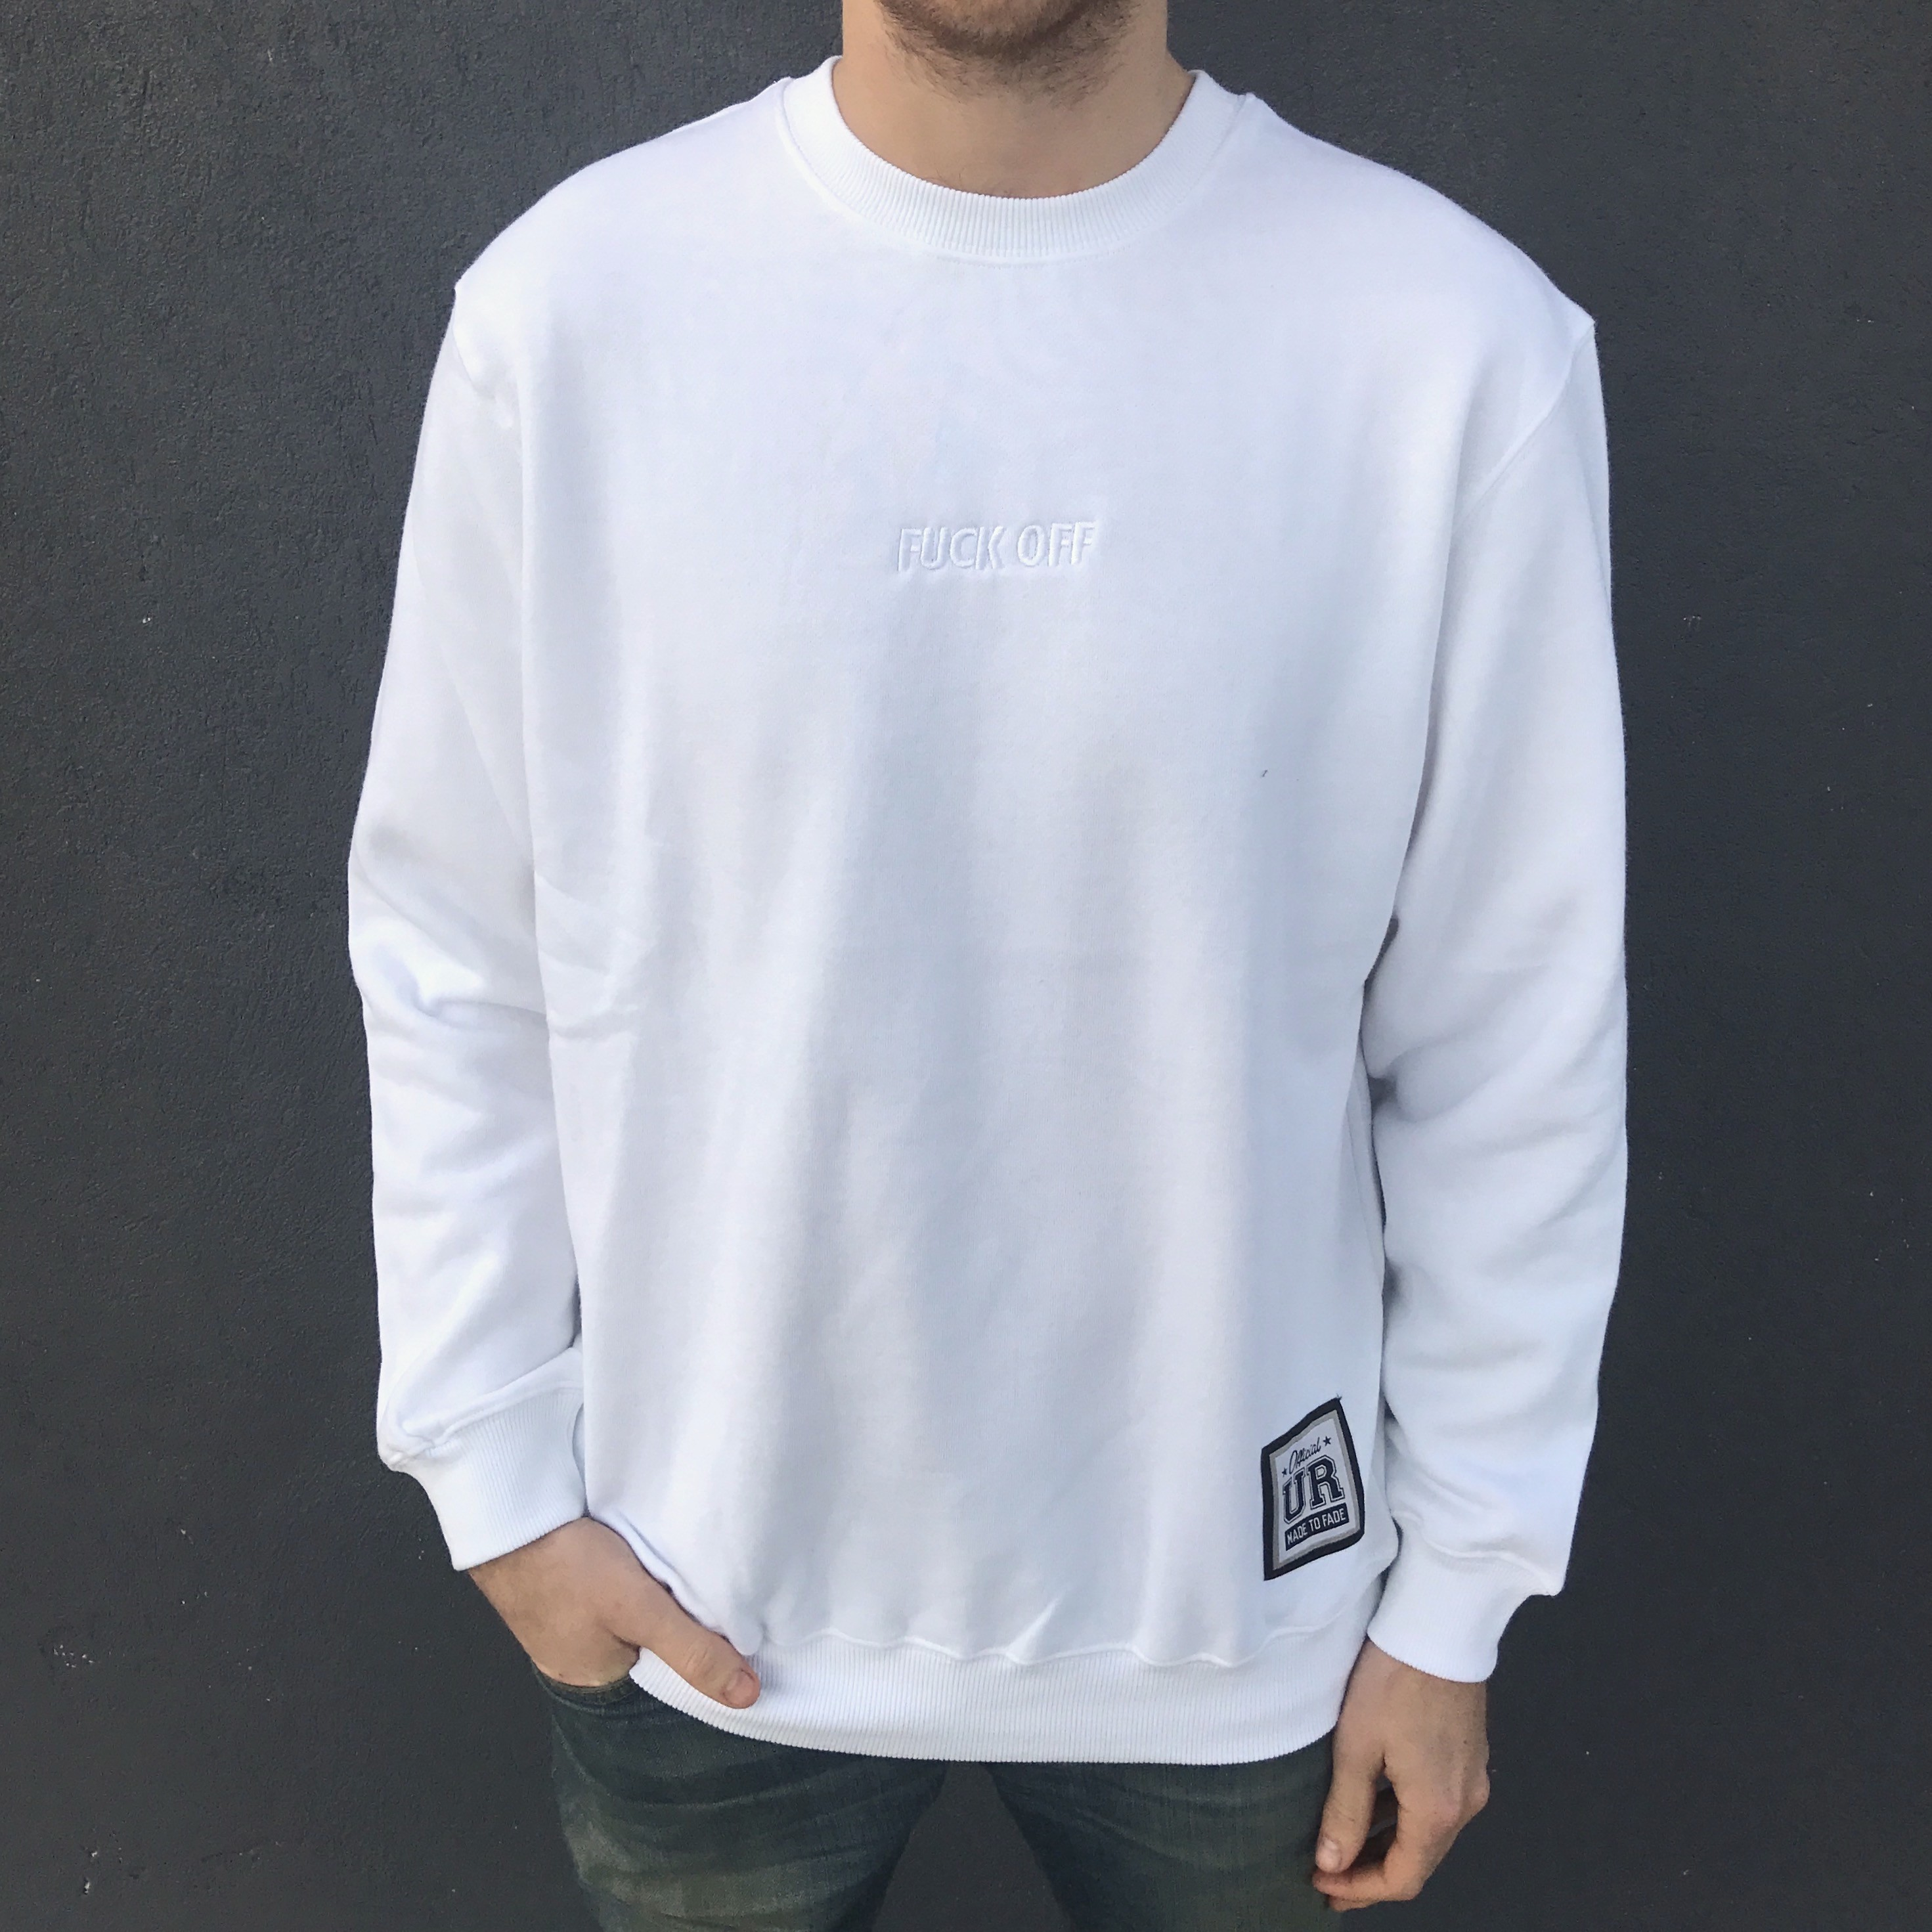 F OFF EMBROIDERED WHITE CREW